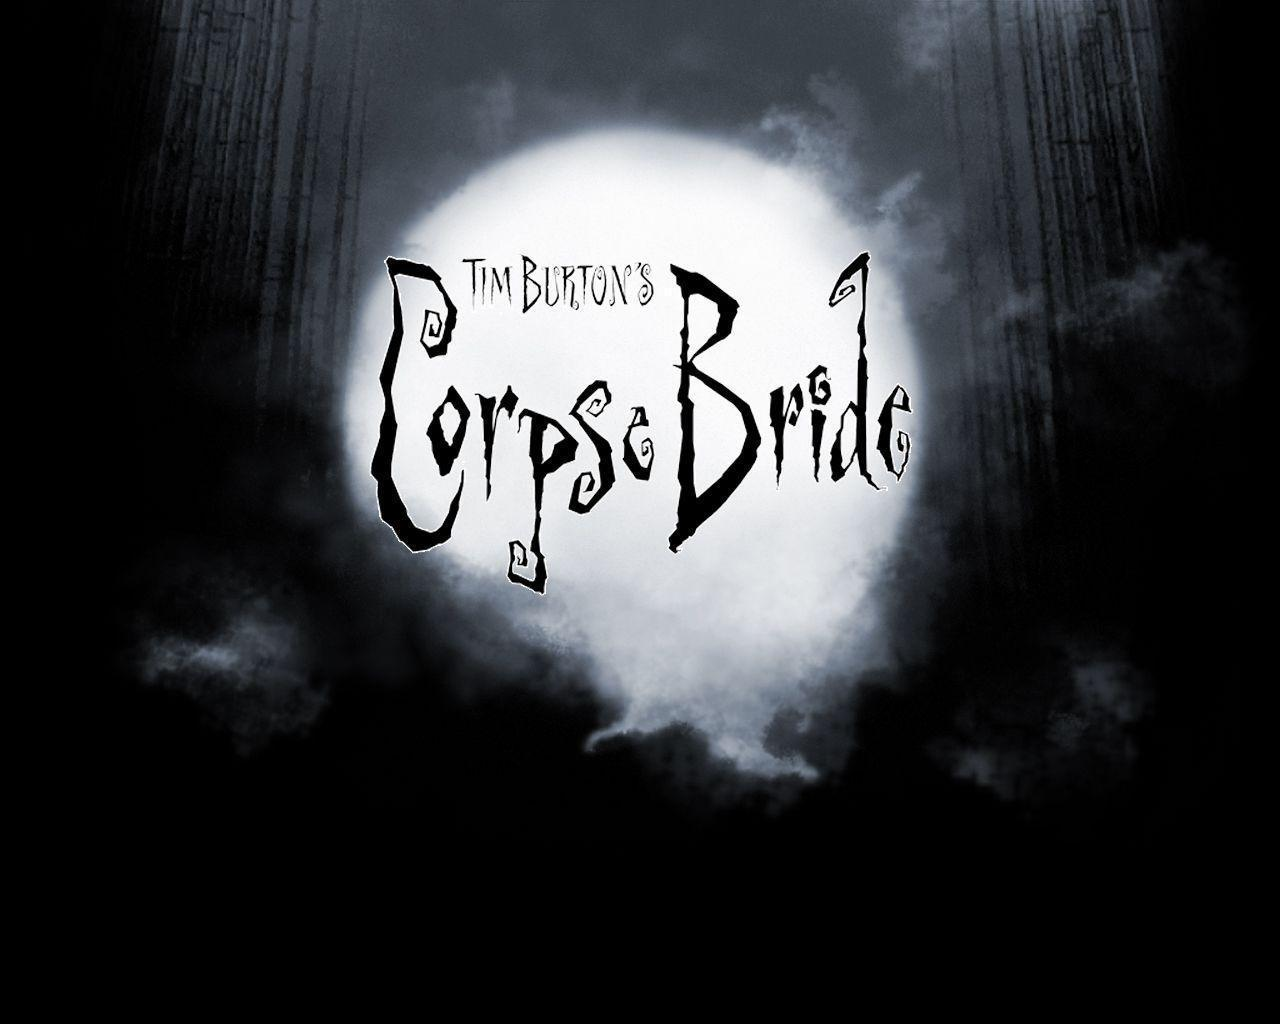 Image For > Corpse Bride Wallpapers